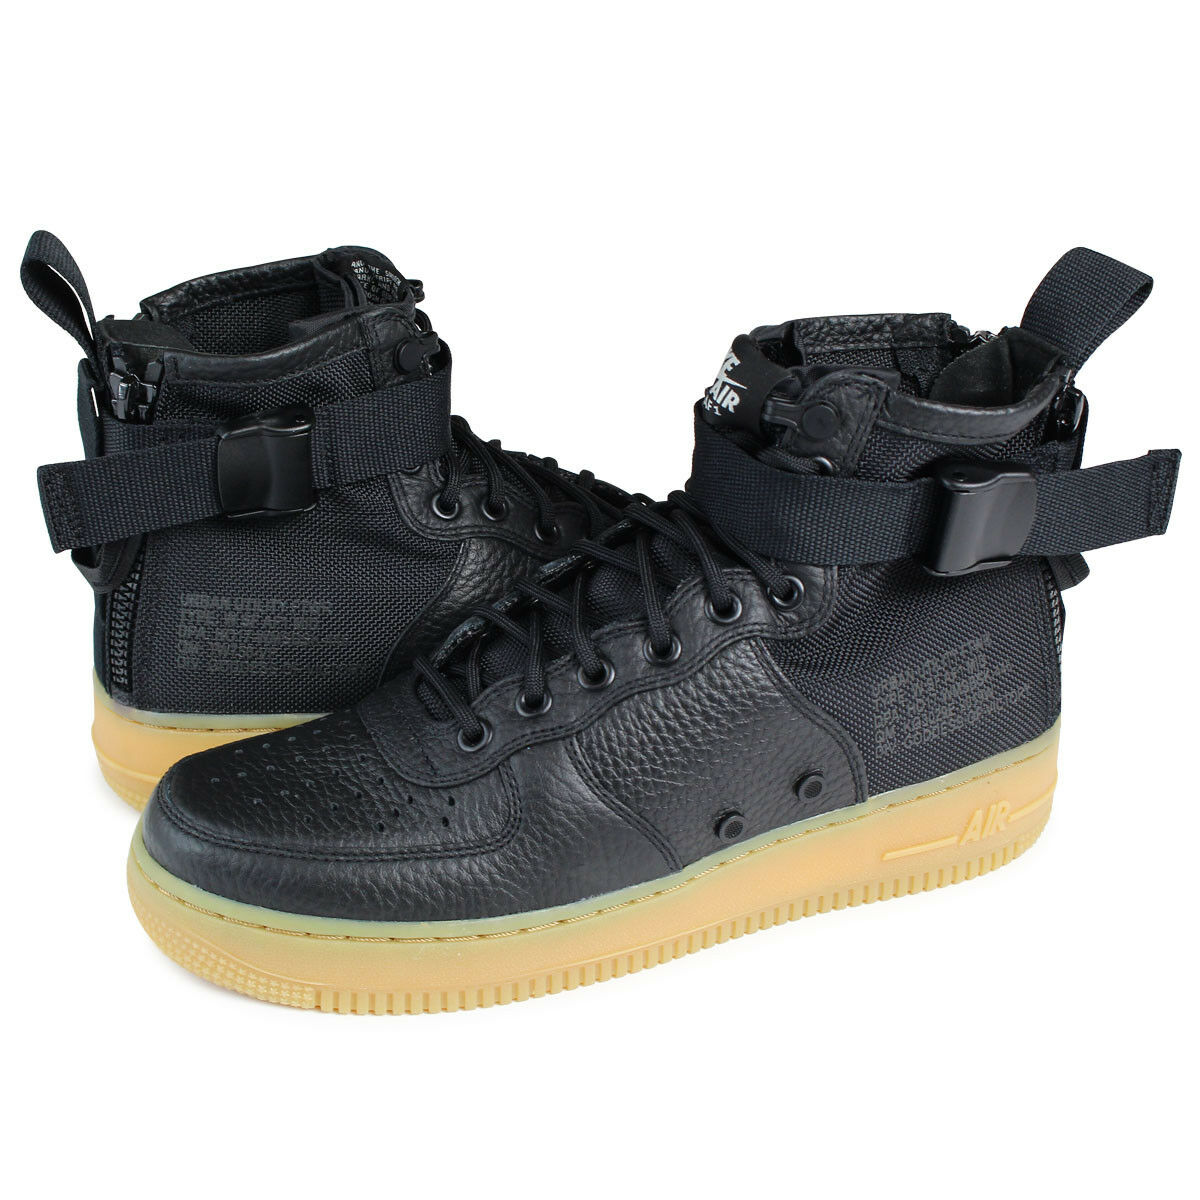 NEW Nike Women's SF AF1 Mid Boots Black Gum Special Field Many Sizes AA3966 002